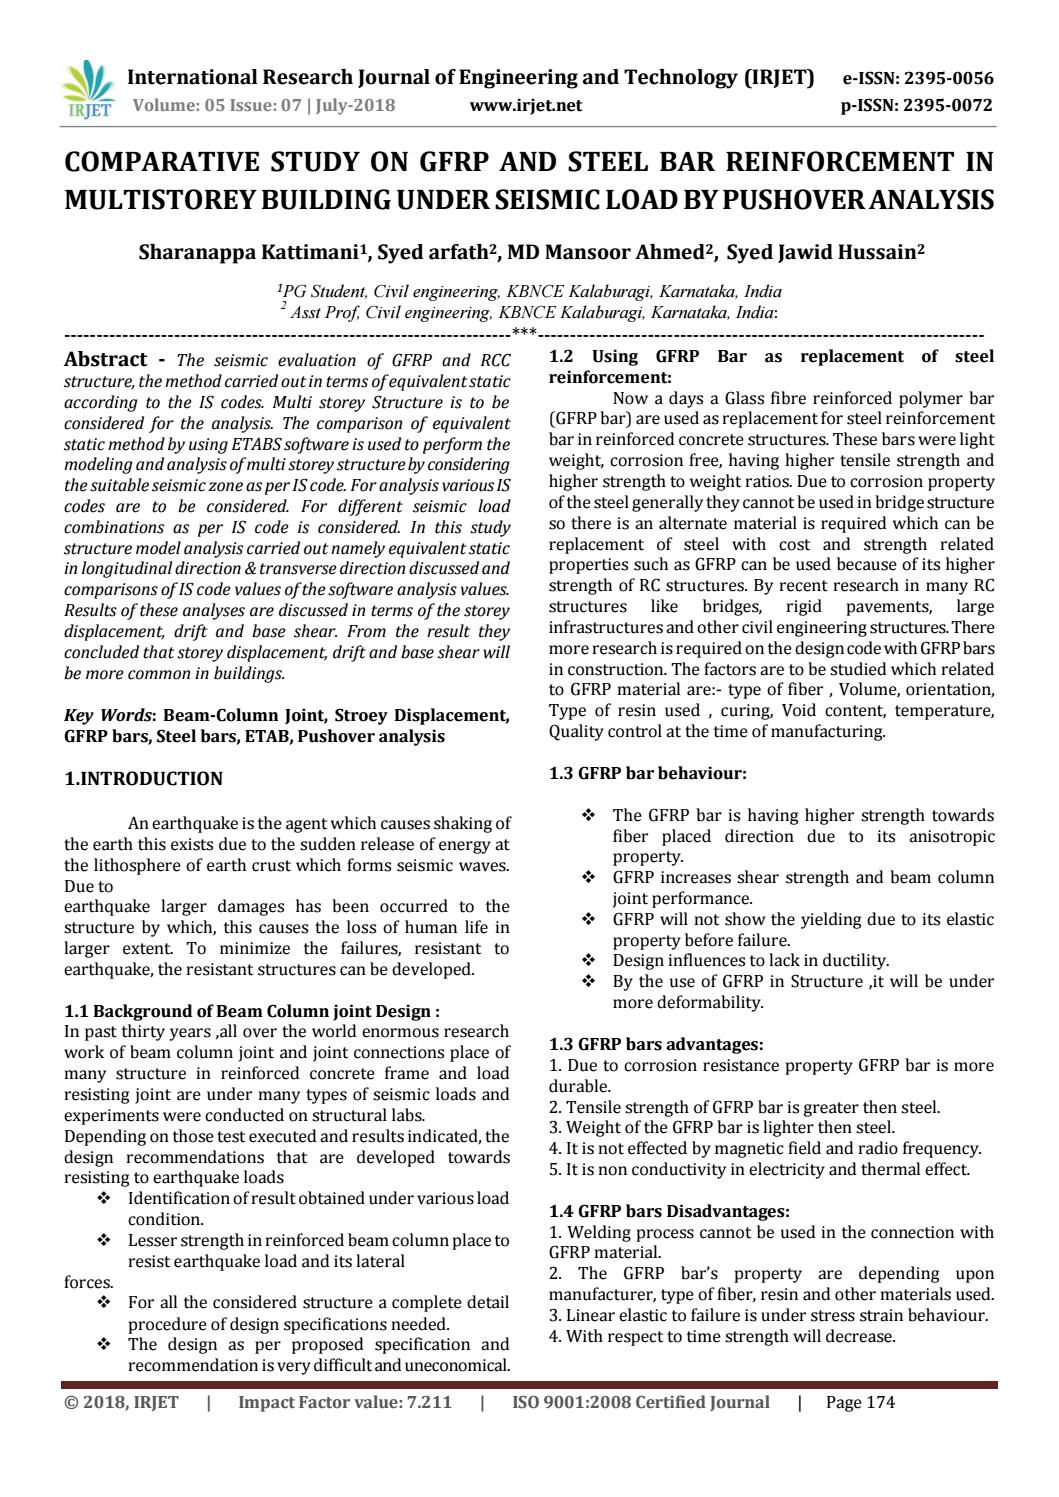 IRJET-Comparative Study on GFRP and Steel Bar Reinforcement